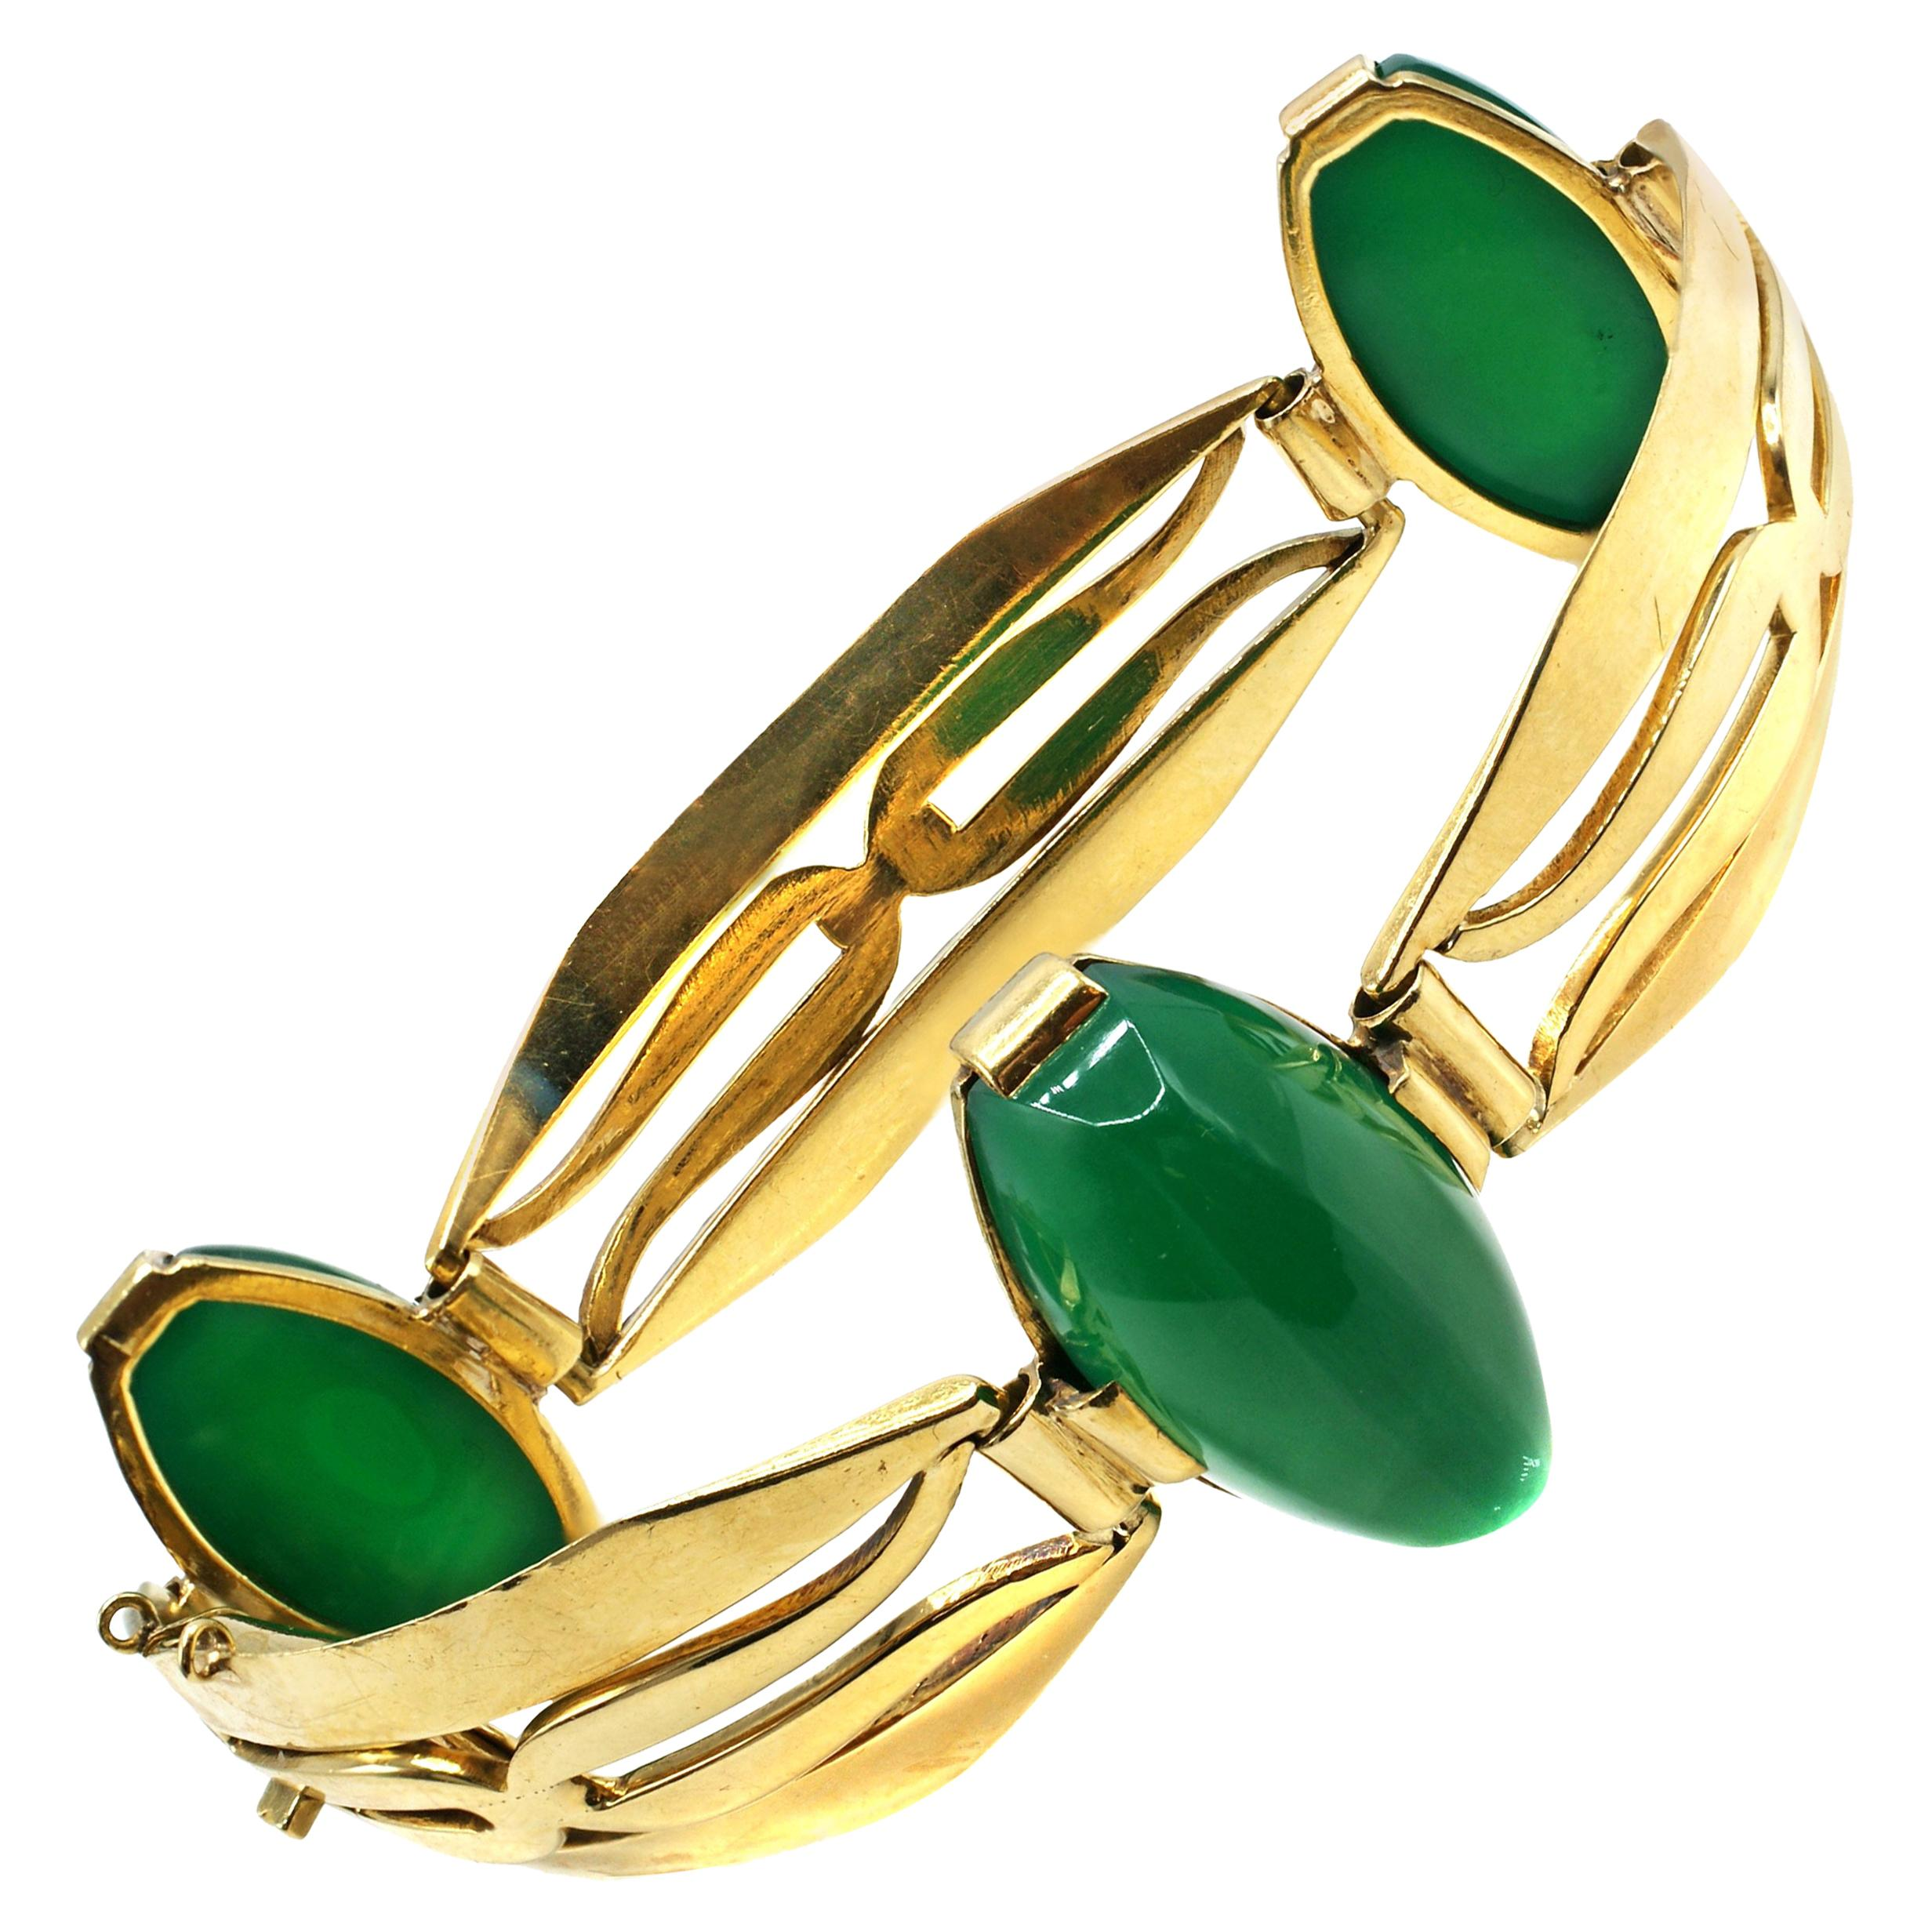 Art Deco French Chrysoprase 18 Karat Yellow Gold Bracelet